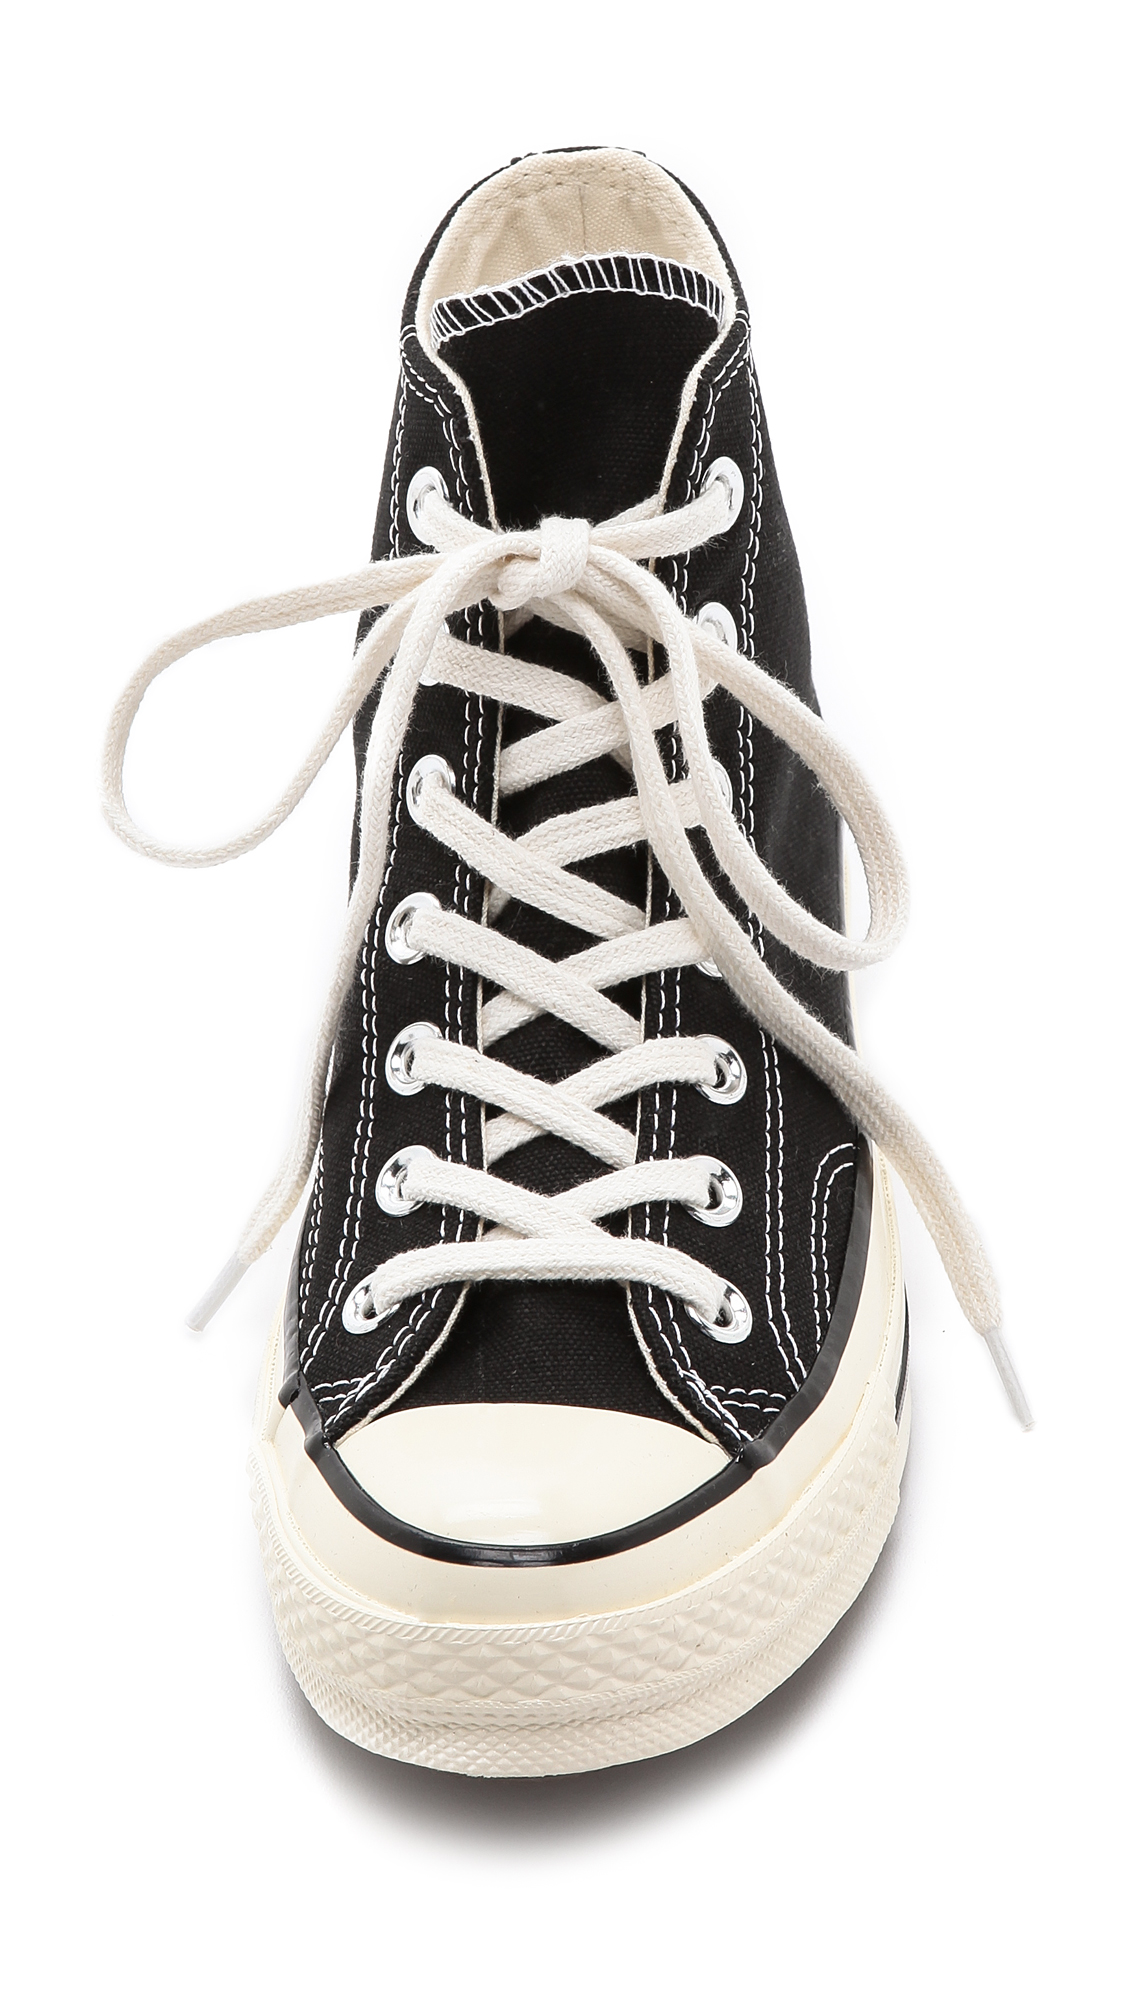 converse 70s. converse all star \u002770s high top sneakers | shopbop save up to 30% use code: more17 70s